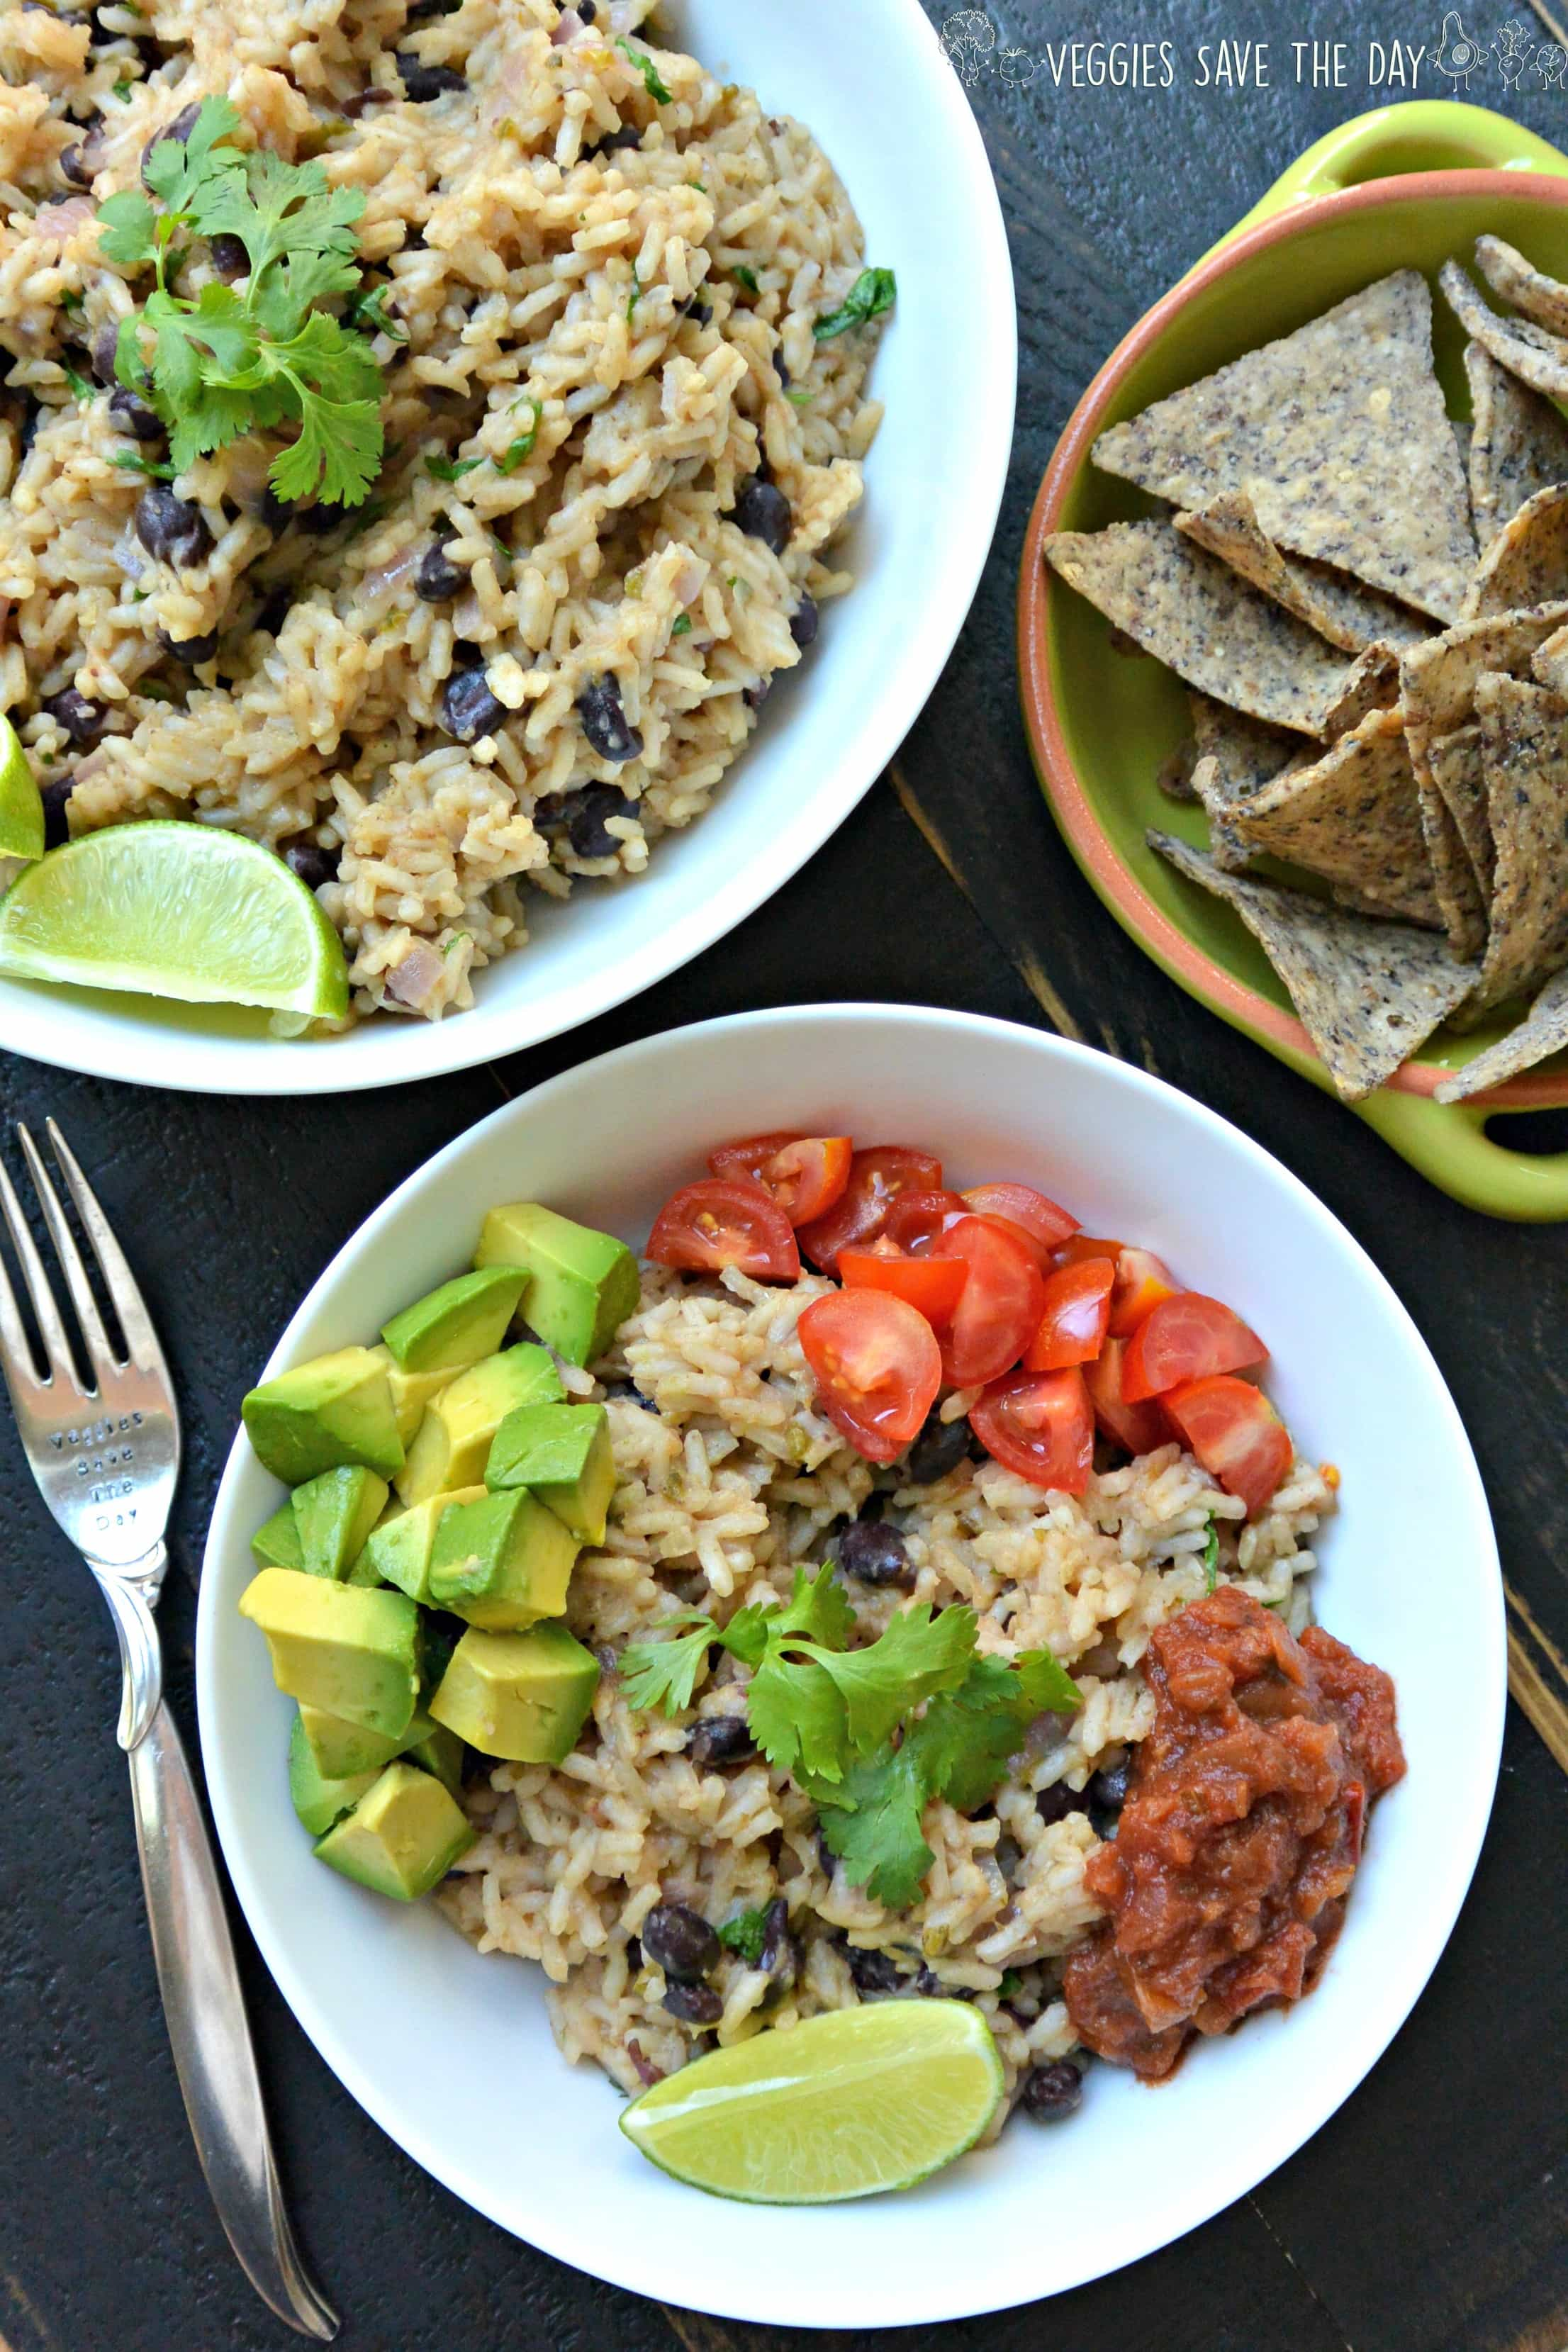 Gluten-Free Vegan Recipes -cilantro lime rice and black beans